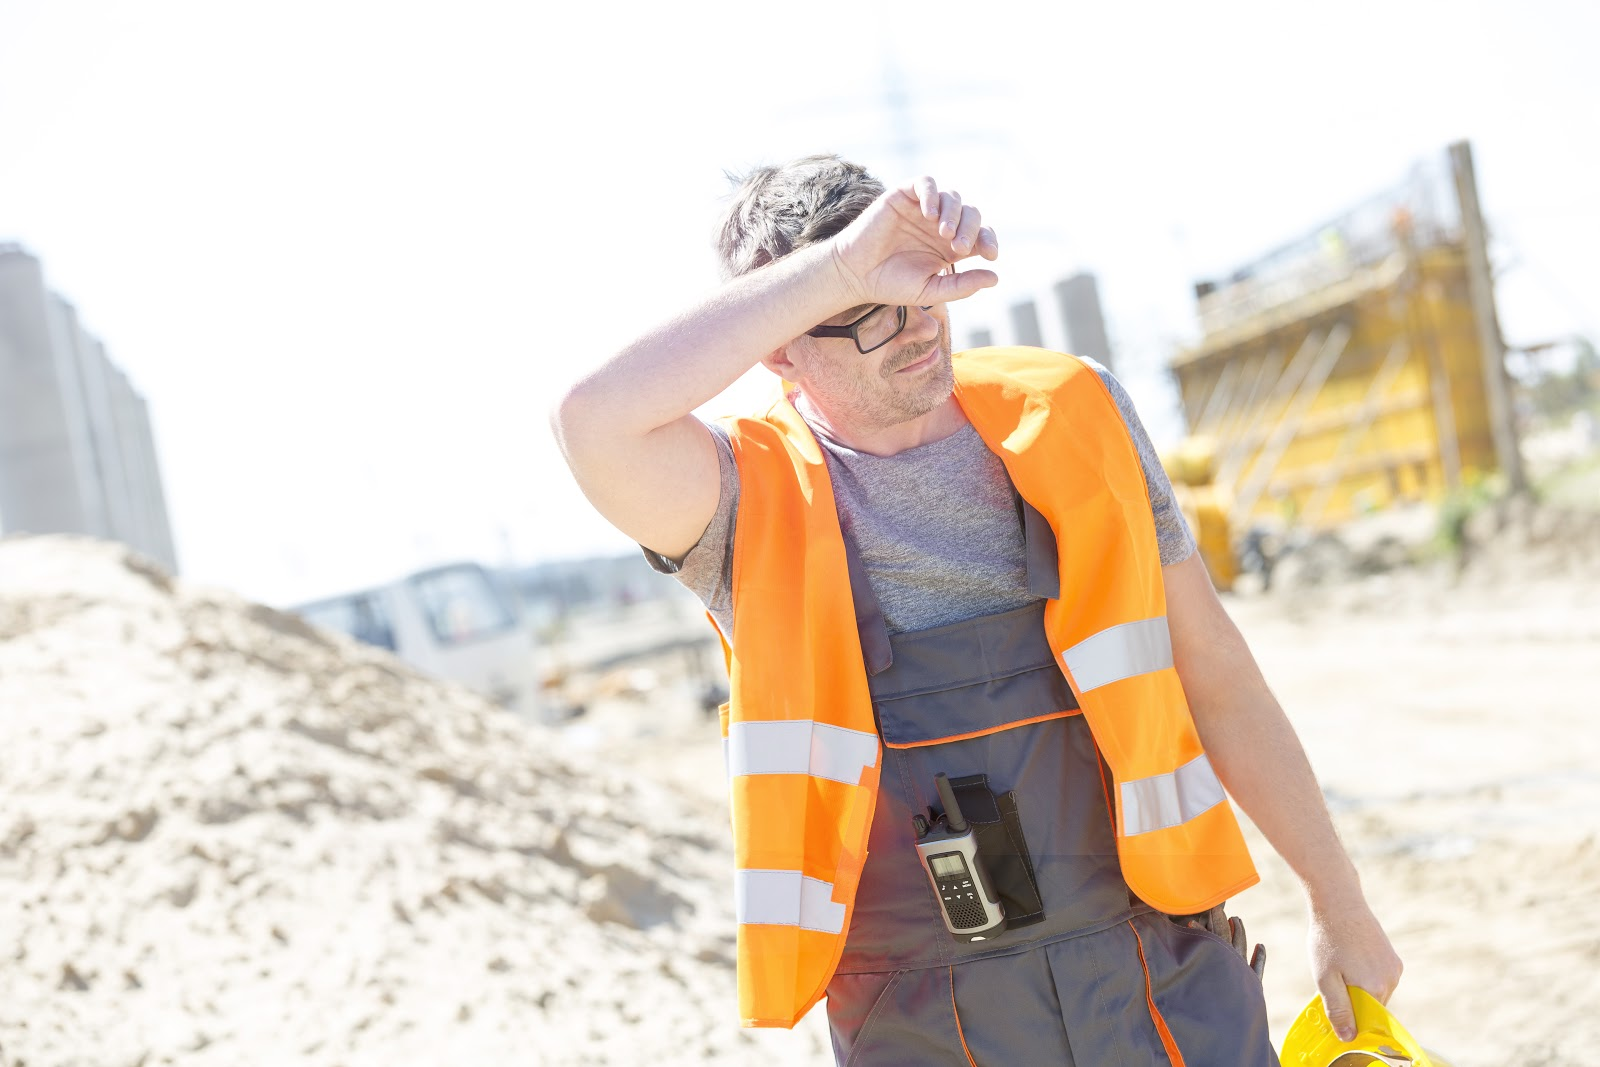 Construction worker outside during hot weather